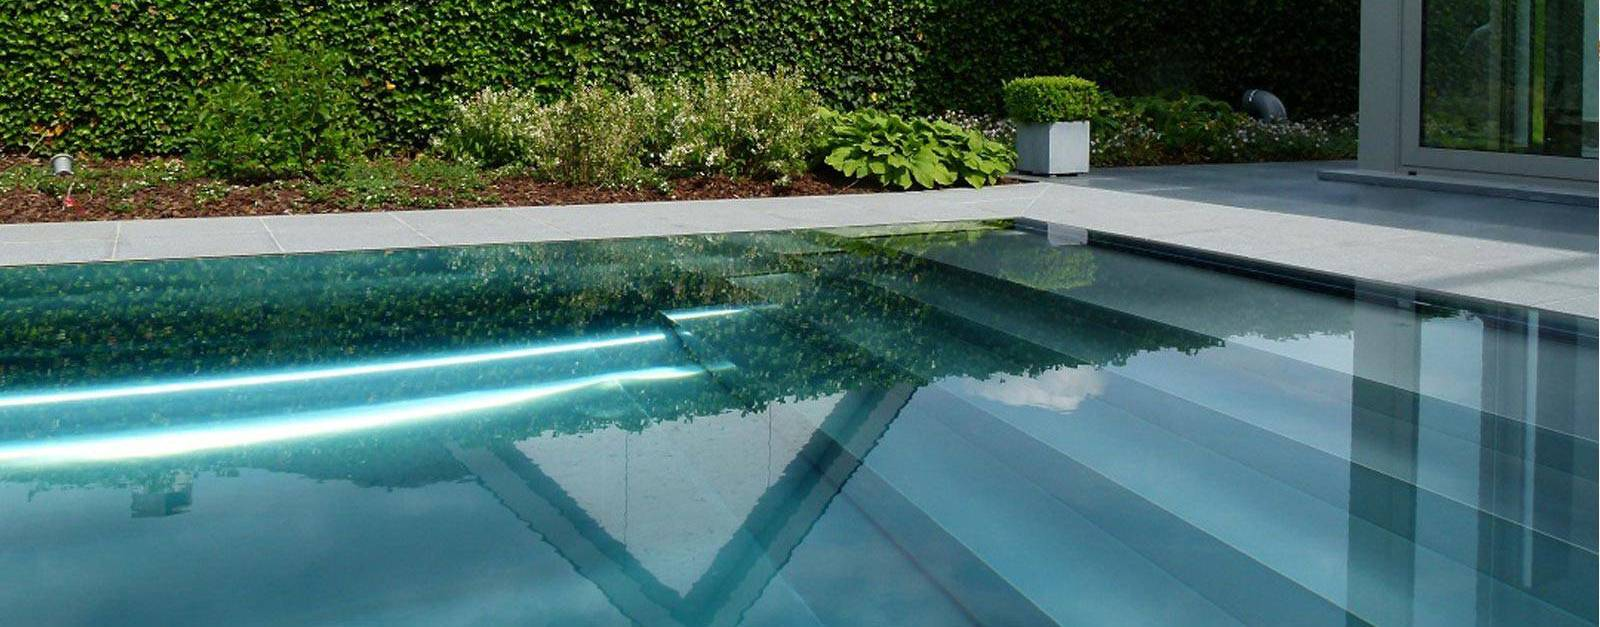 Le carrelage piscine la meilleure solution for Revetement piscine miroir